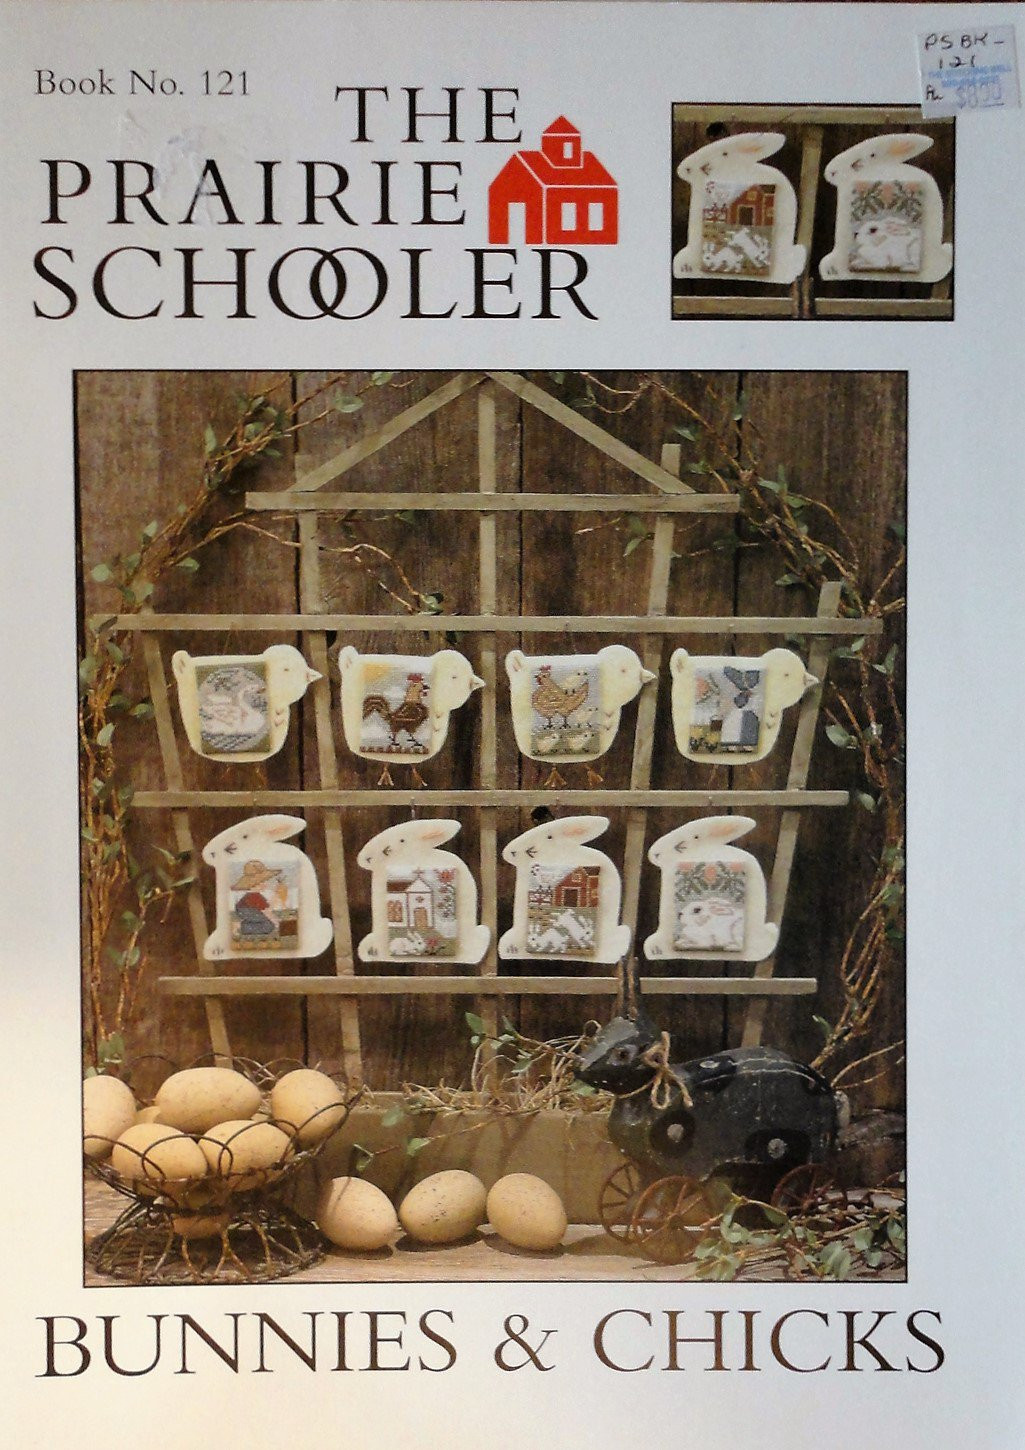 The Prairie Schooler No. 121 Bunnies & Chicks Cross stitch chart pattern